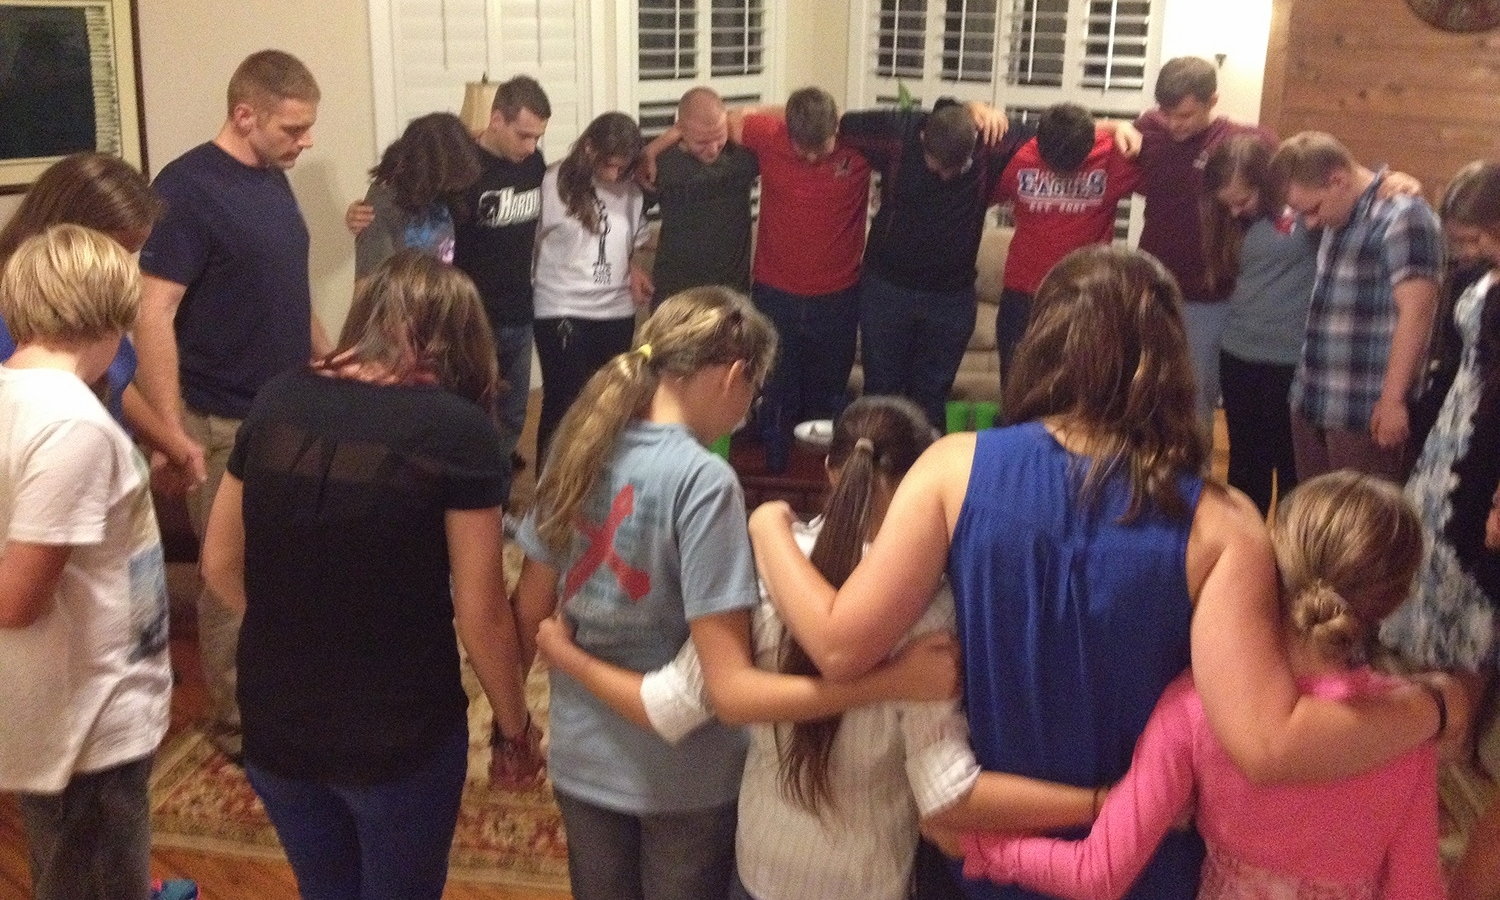 Monthly Devotional   - Once a month, our middle school and high school students gather for a devotional time in the home of one of our members. They share a meal together, sing songs of praise, and hear a short devotional message from one of the young men.